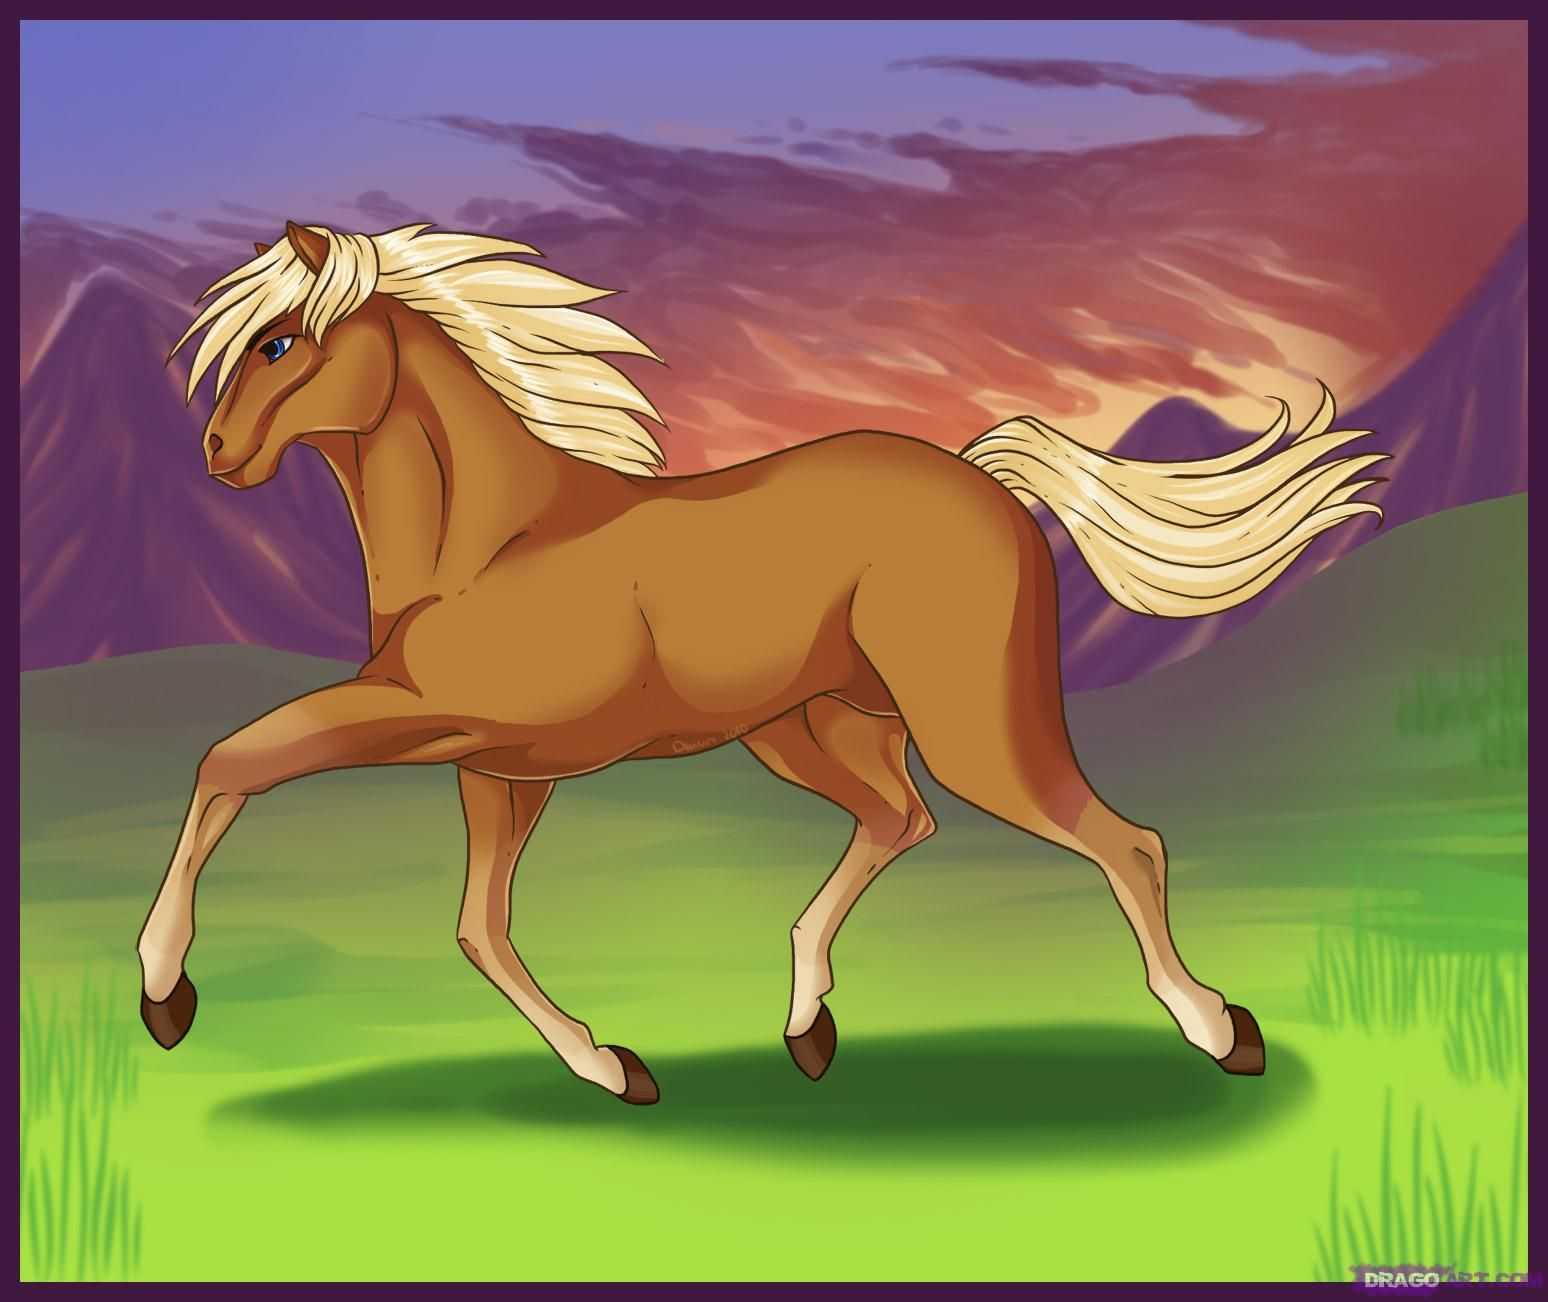 How To Draw A Horse Google Search How To Draw A Horse (running) Step